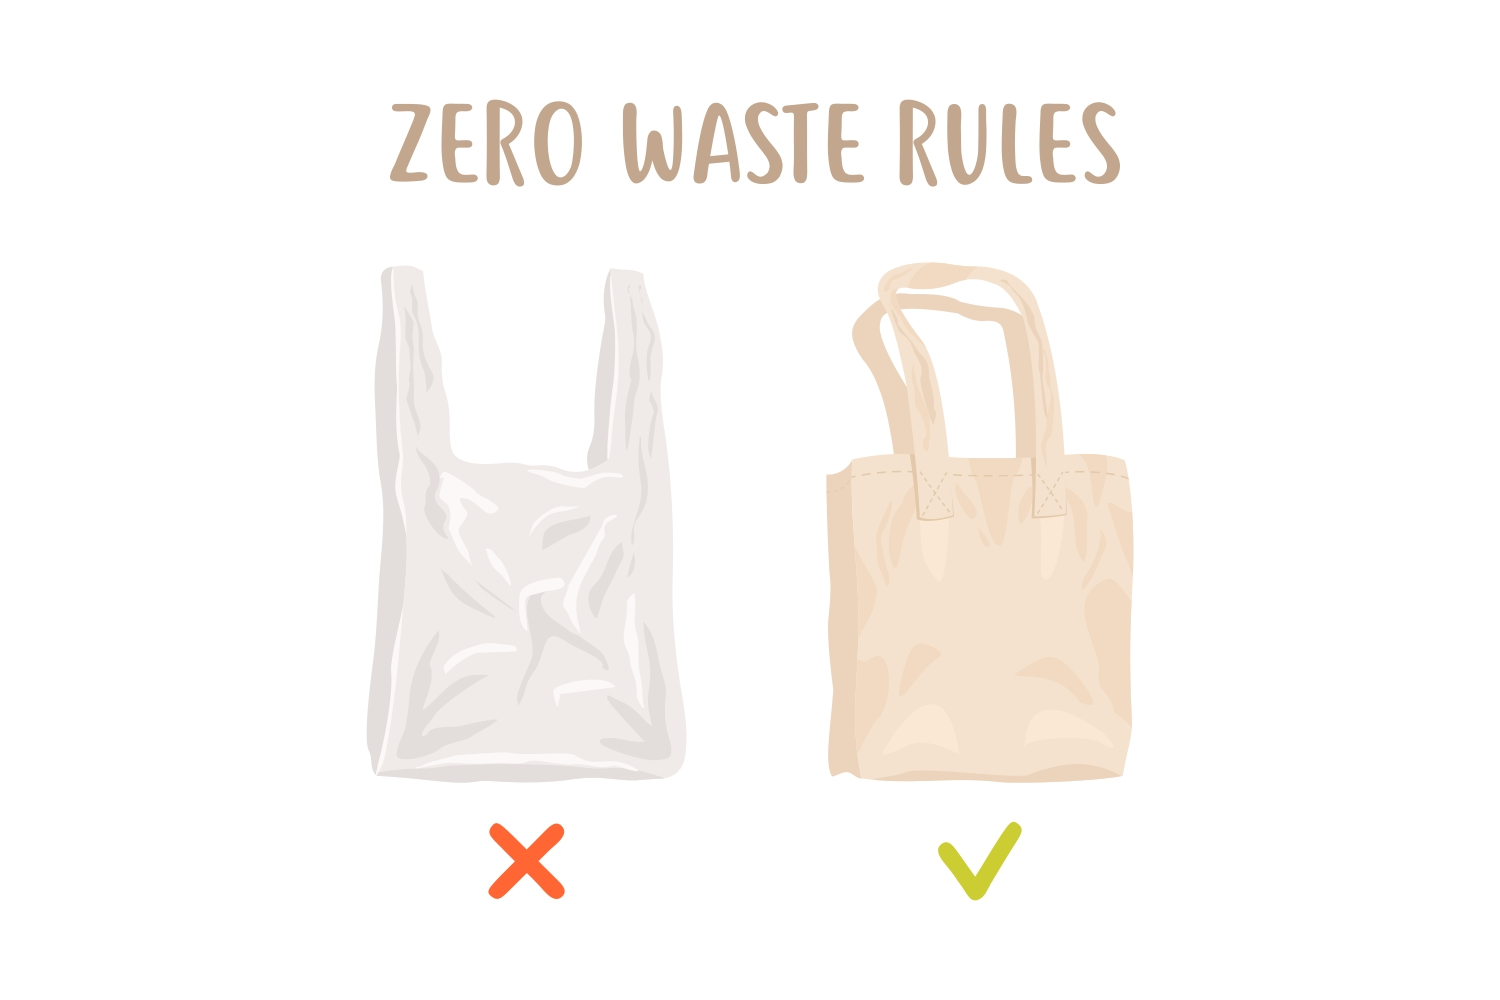 Zero waste rules example image 2